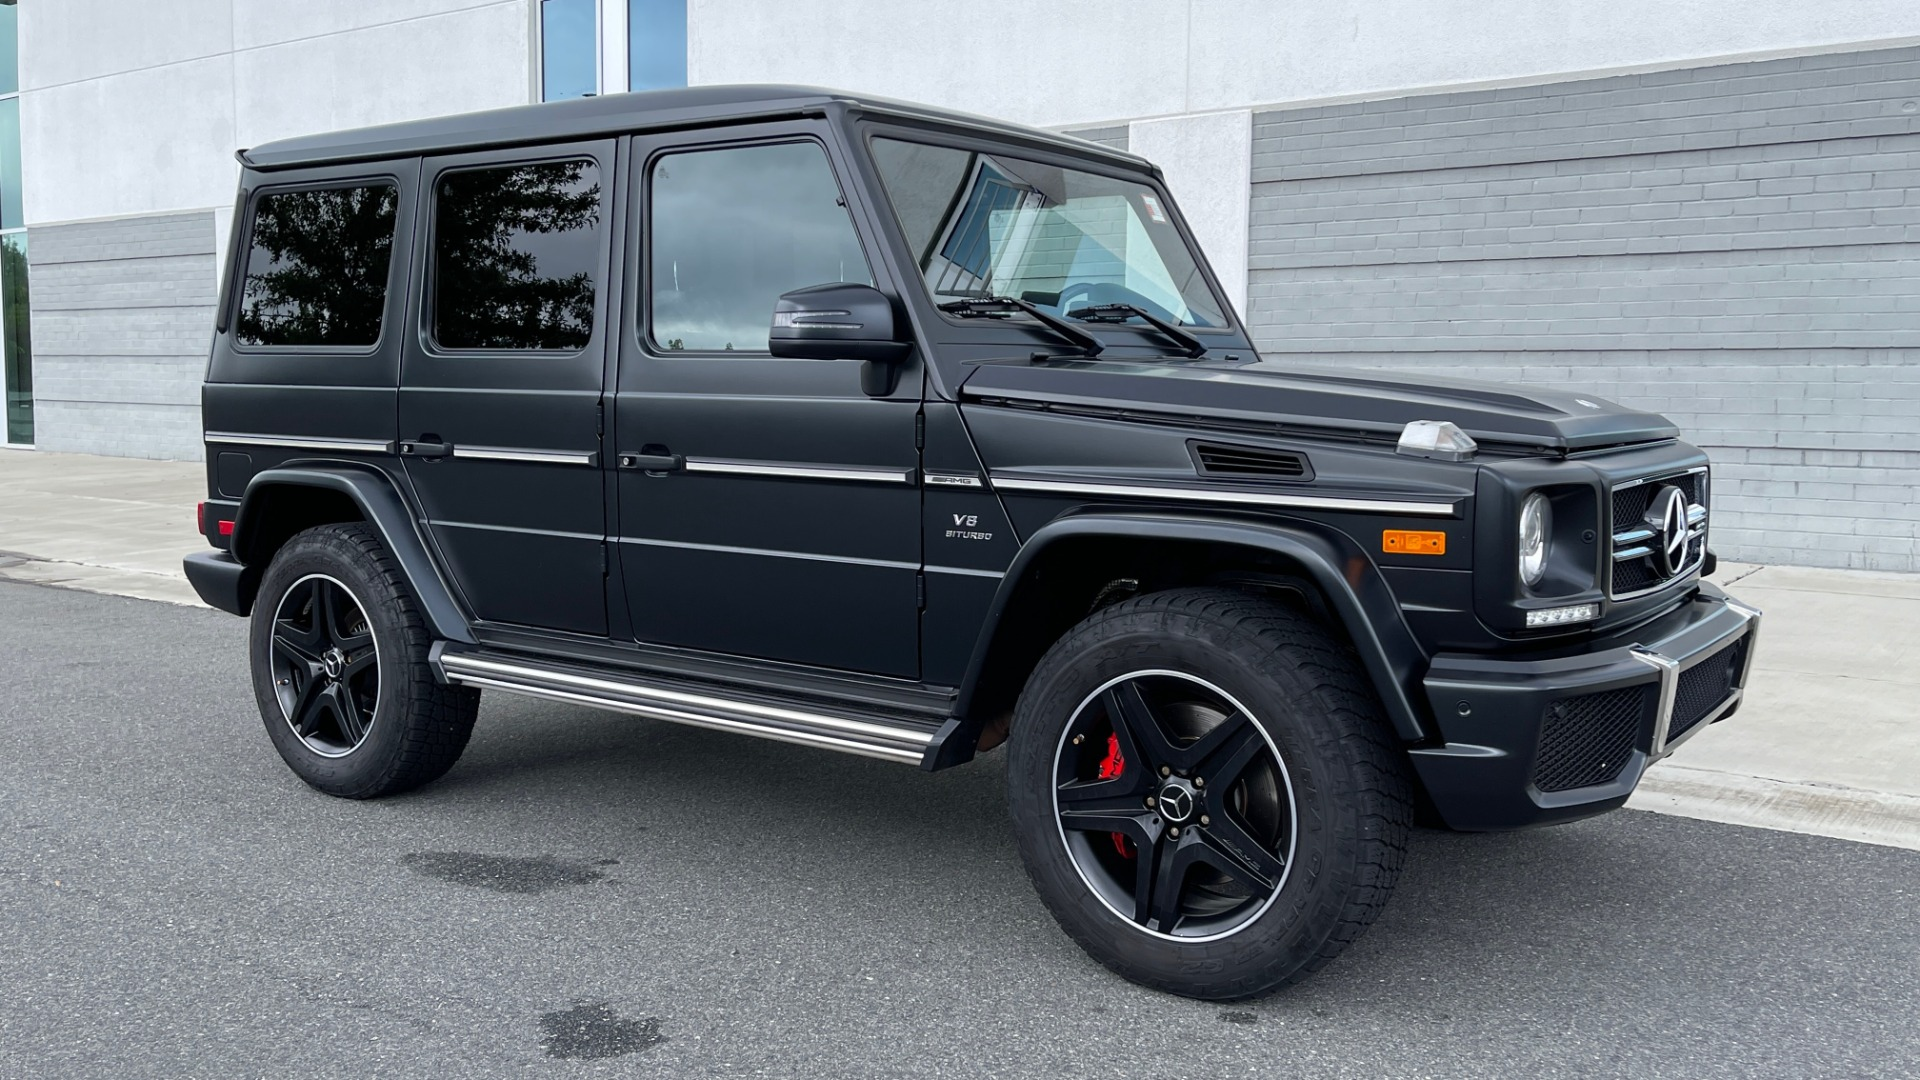 Used 2017 Mercedes-Benz G-CLASS AMG G 63 / DESIGNO PKG / NAV / SUNROOF / H/K SND / REARVIEW for sale $124,999 at Formula Imports in Charlotte NC 28227 5